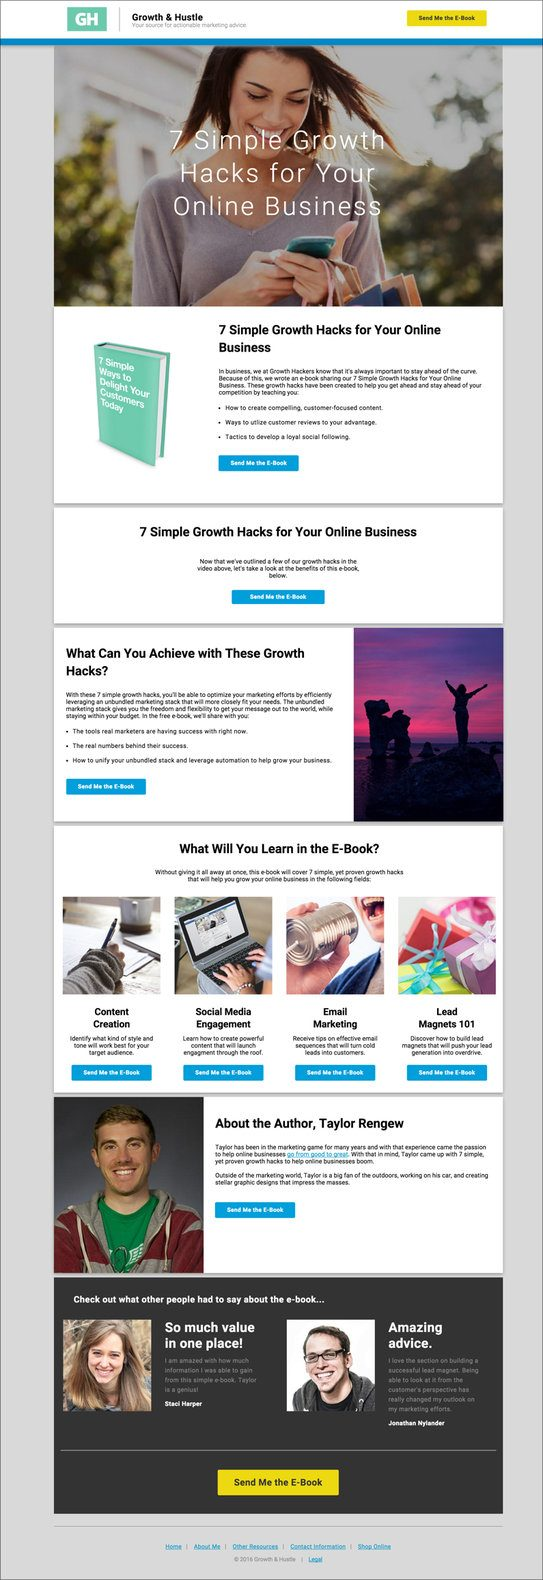 Our LinkedIn landing page template